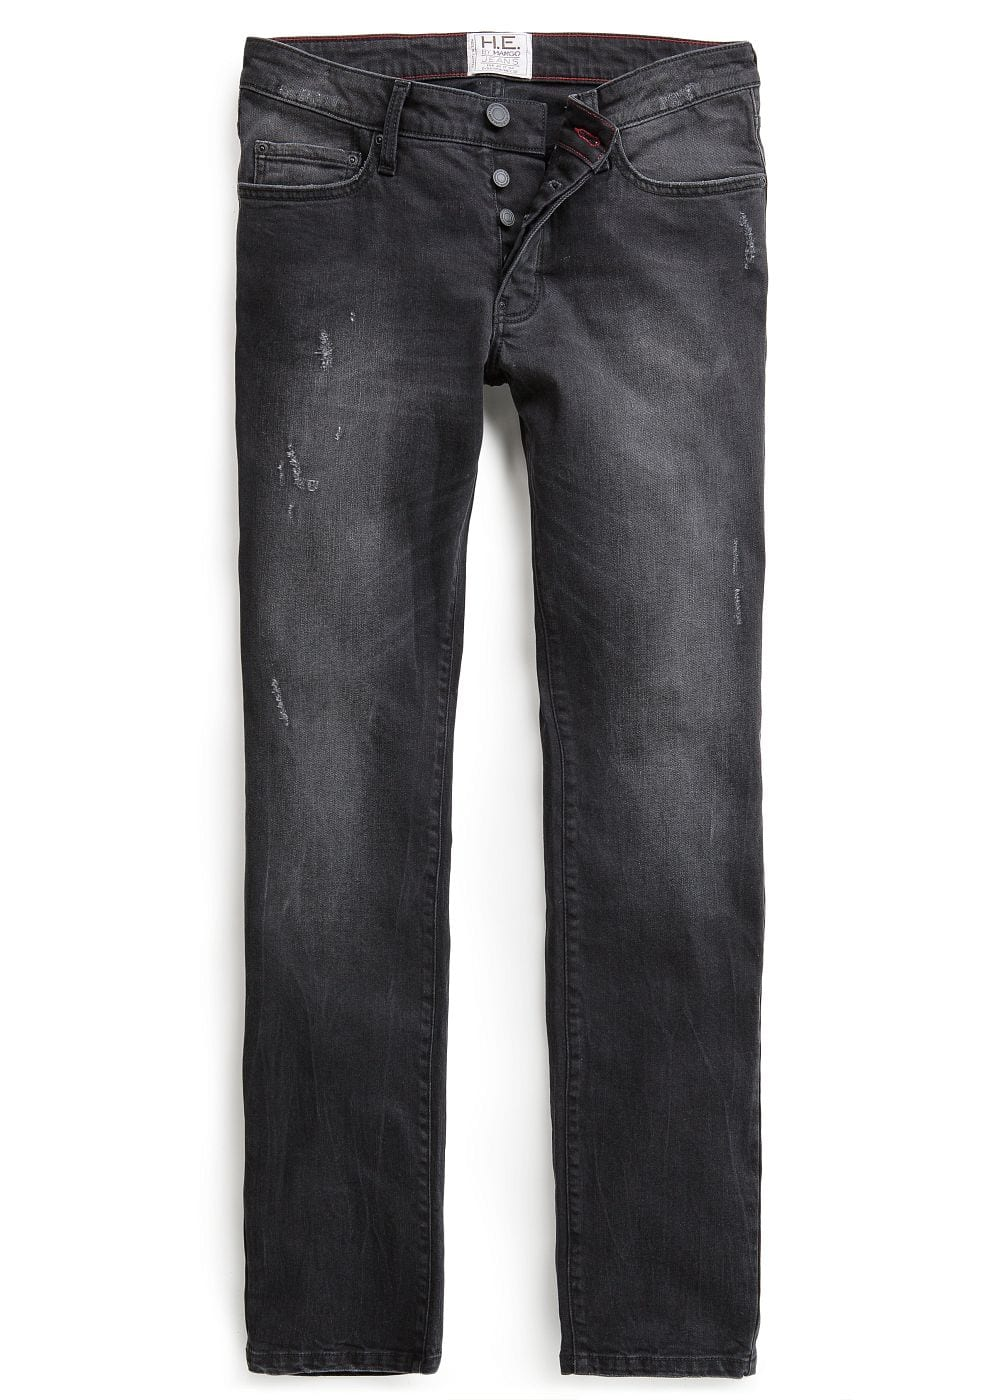 Jeans tim slim-fit negros | MANGO